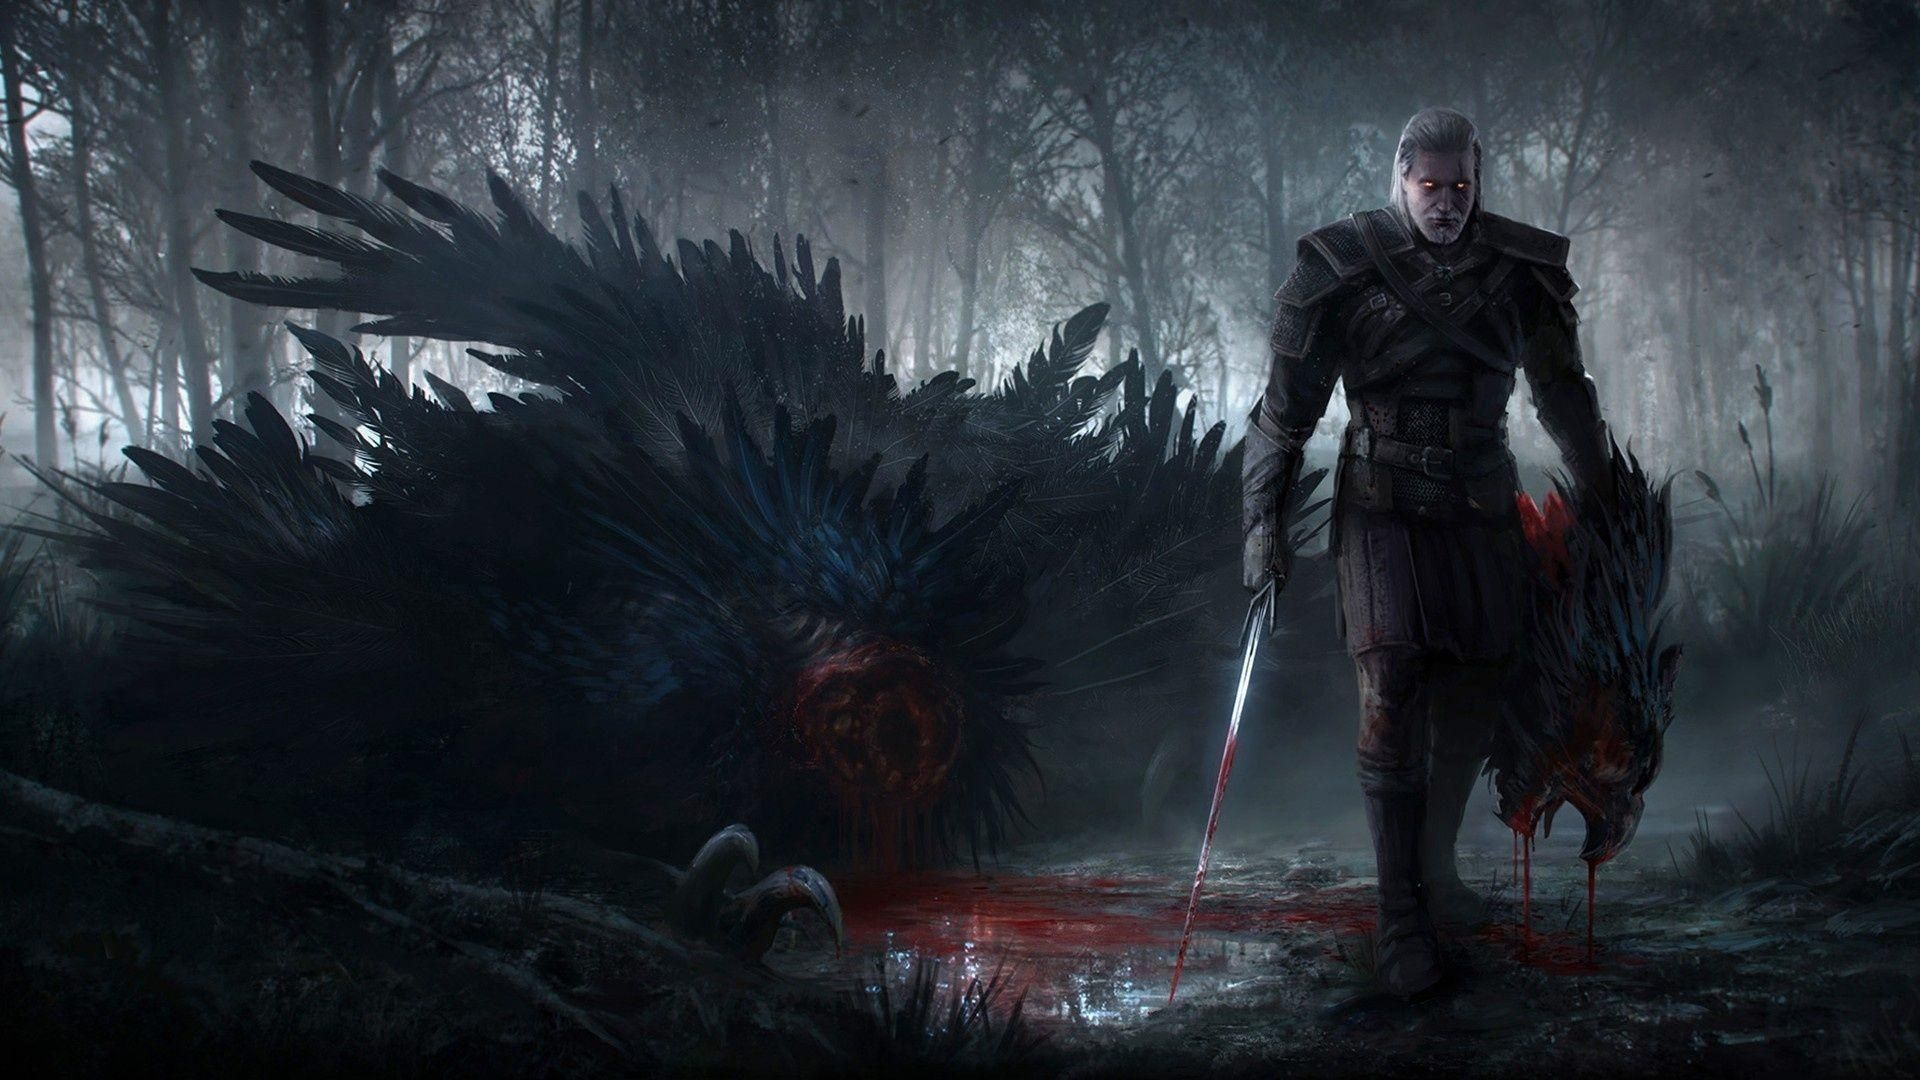 The Witcher, Picture